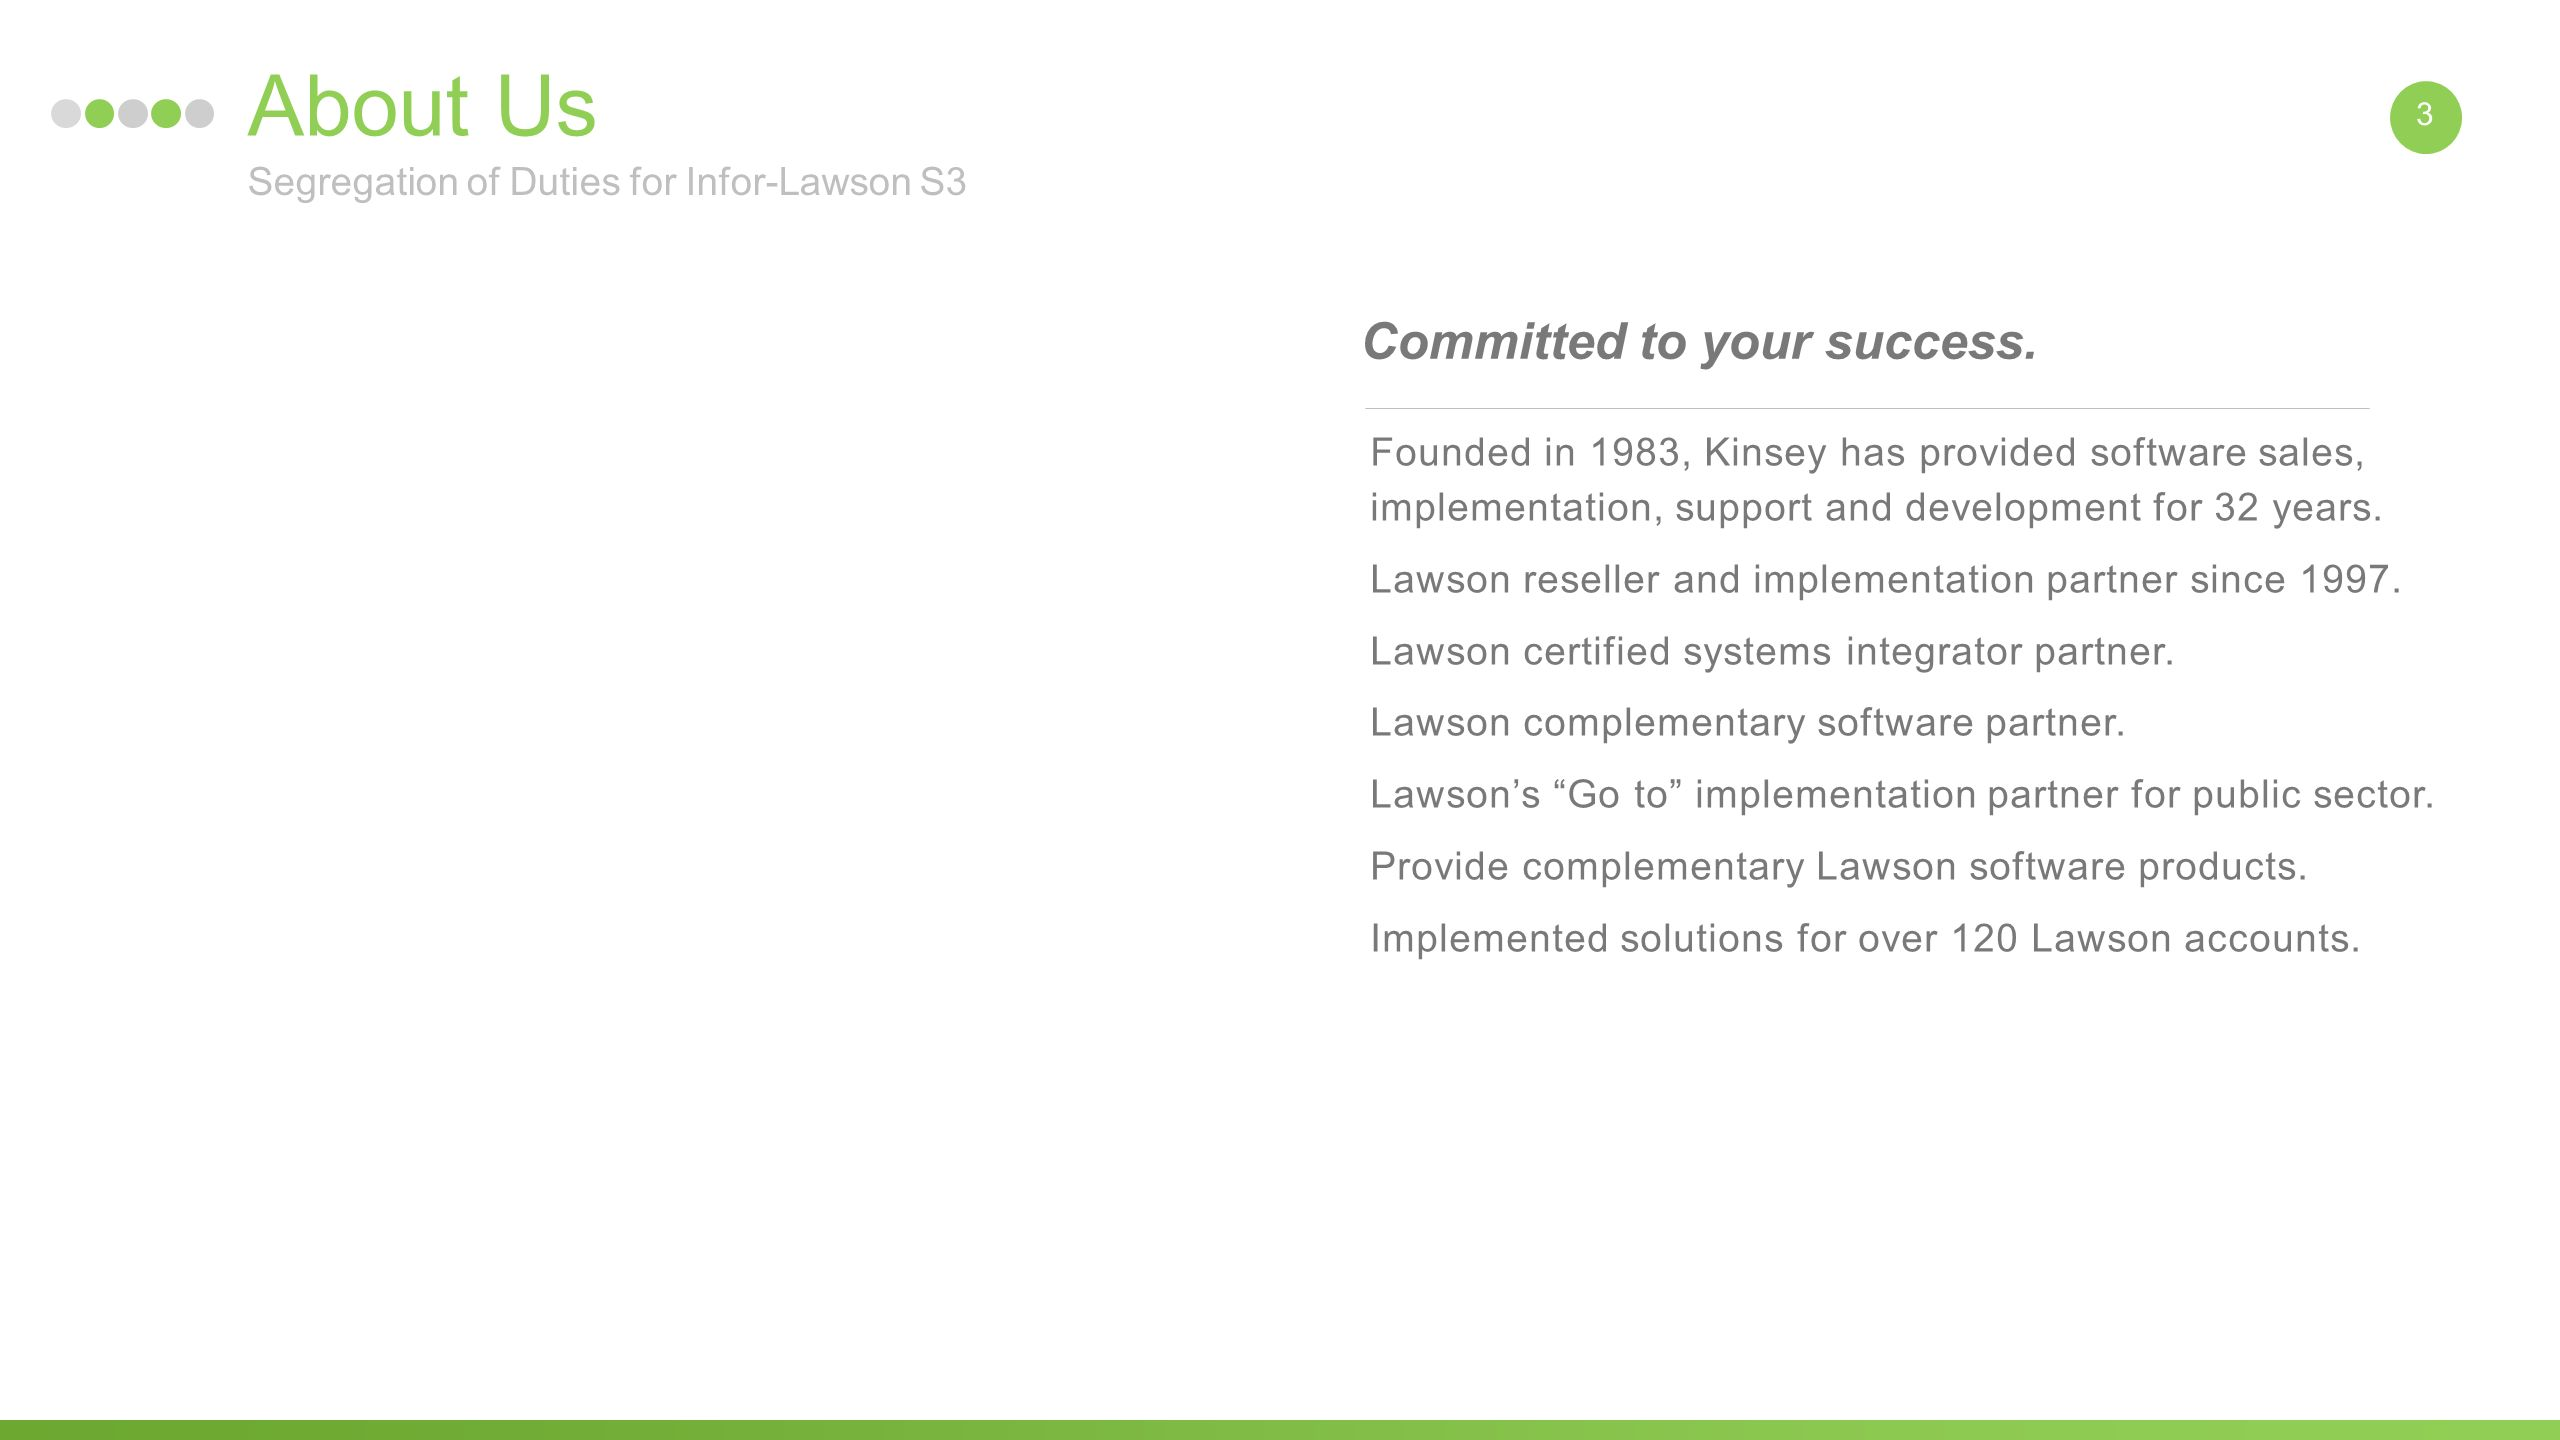 3 about us founded in 1983 kinsey has provided software sales implementation support